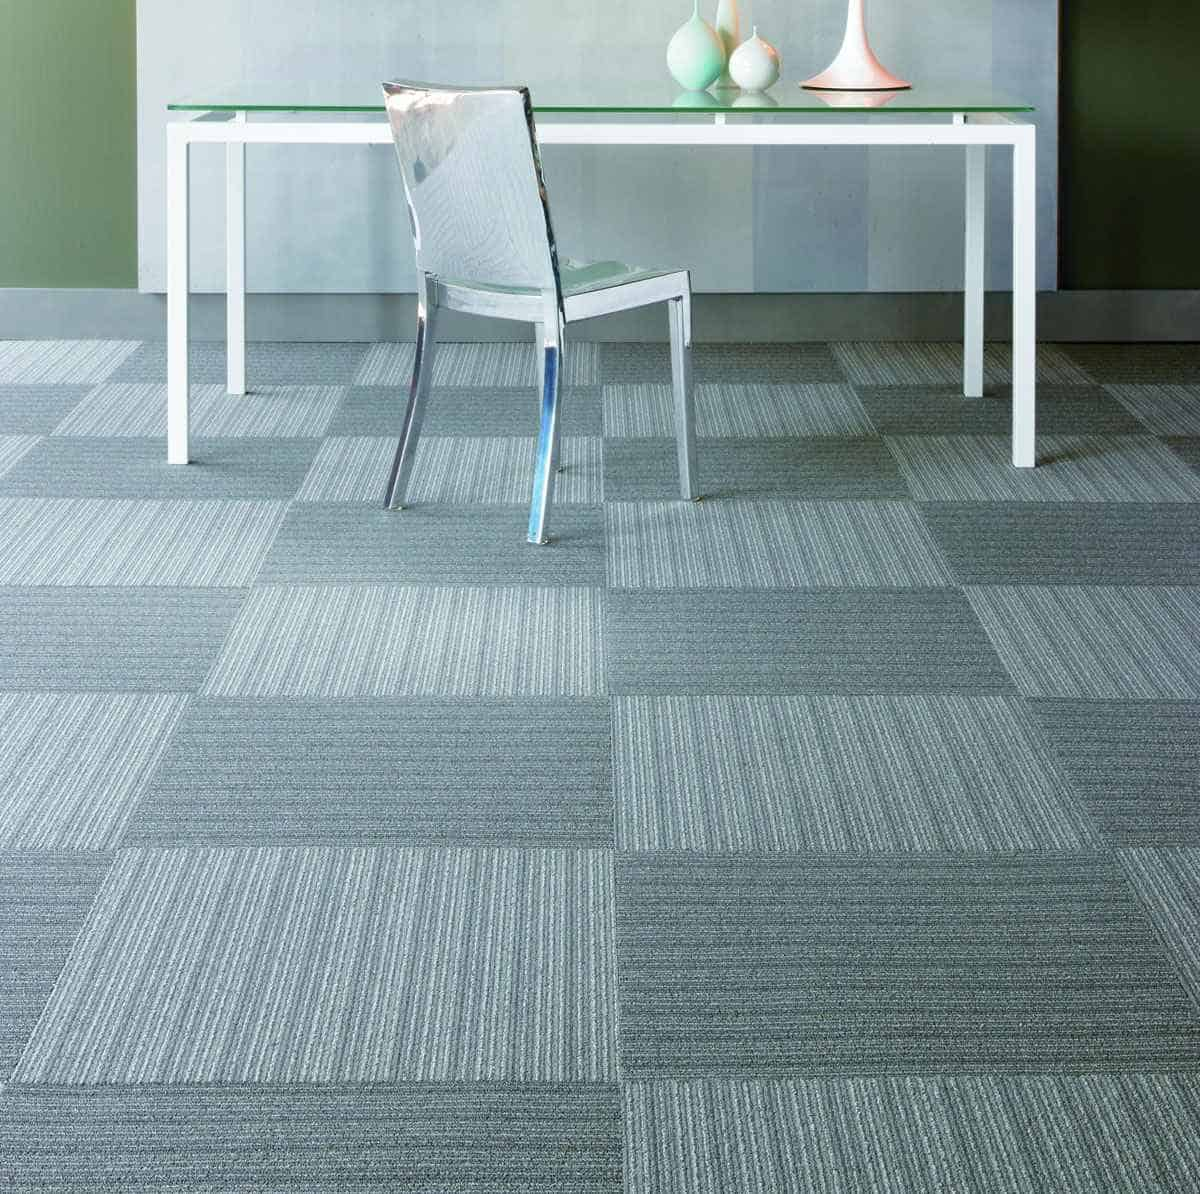 Commercial floor tiles home design contemporary tile design ideas from around the world Commercial floor tile